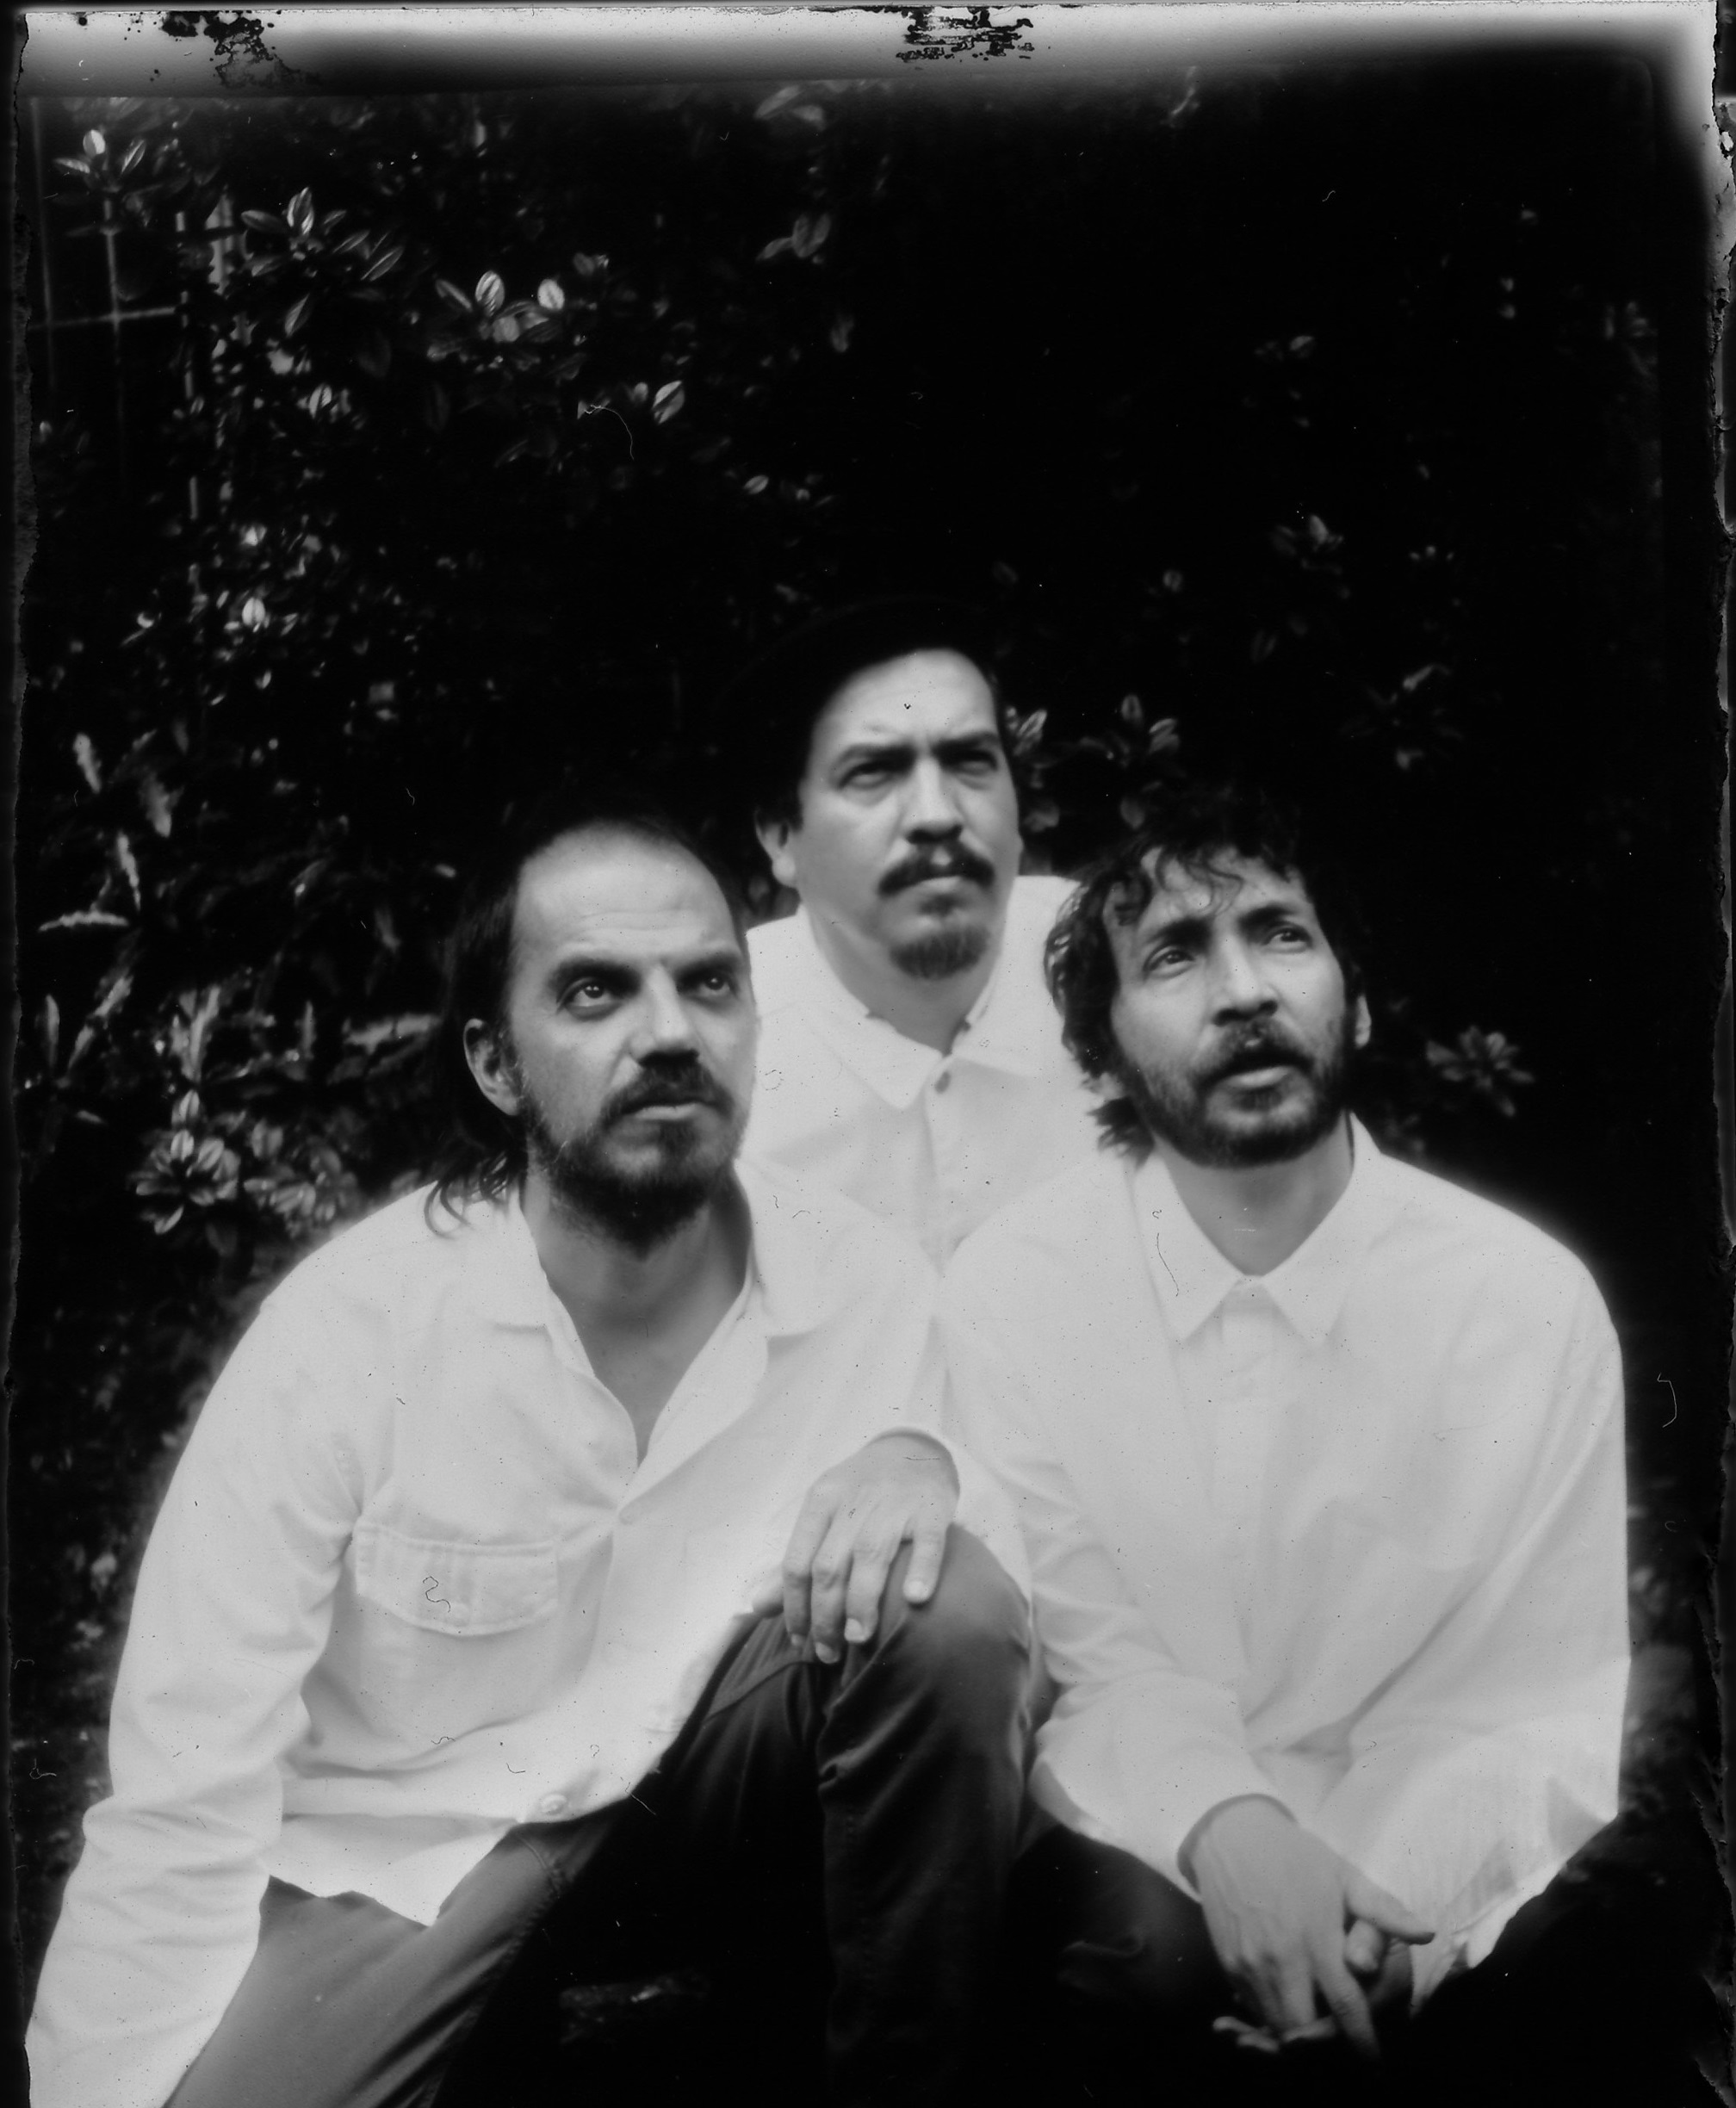 Los Pirañas announce new album 'Historia Natural'